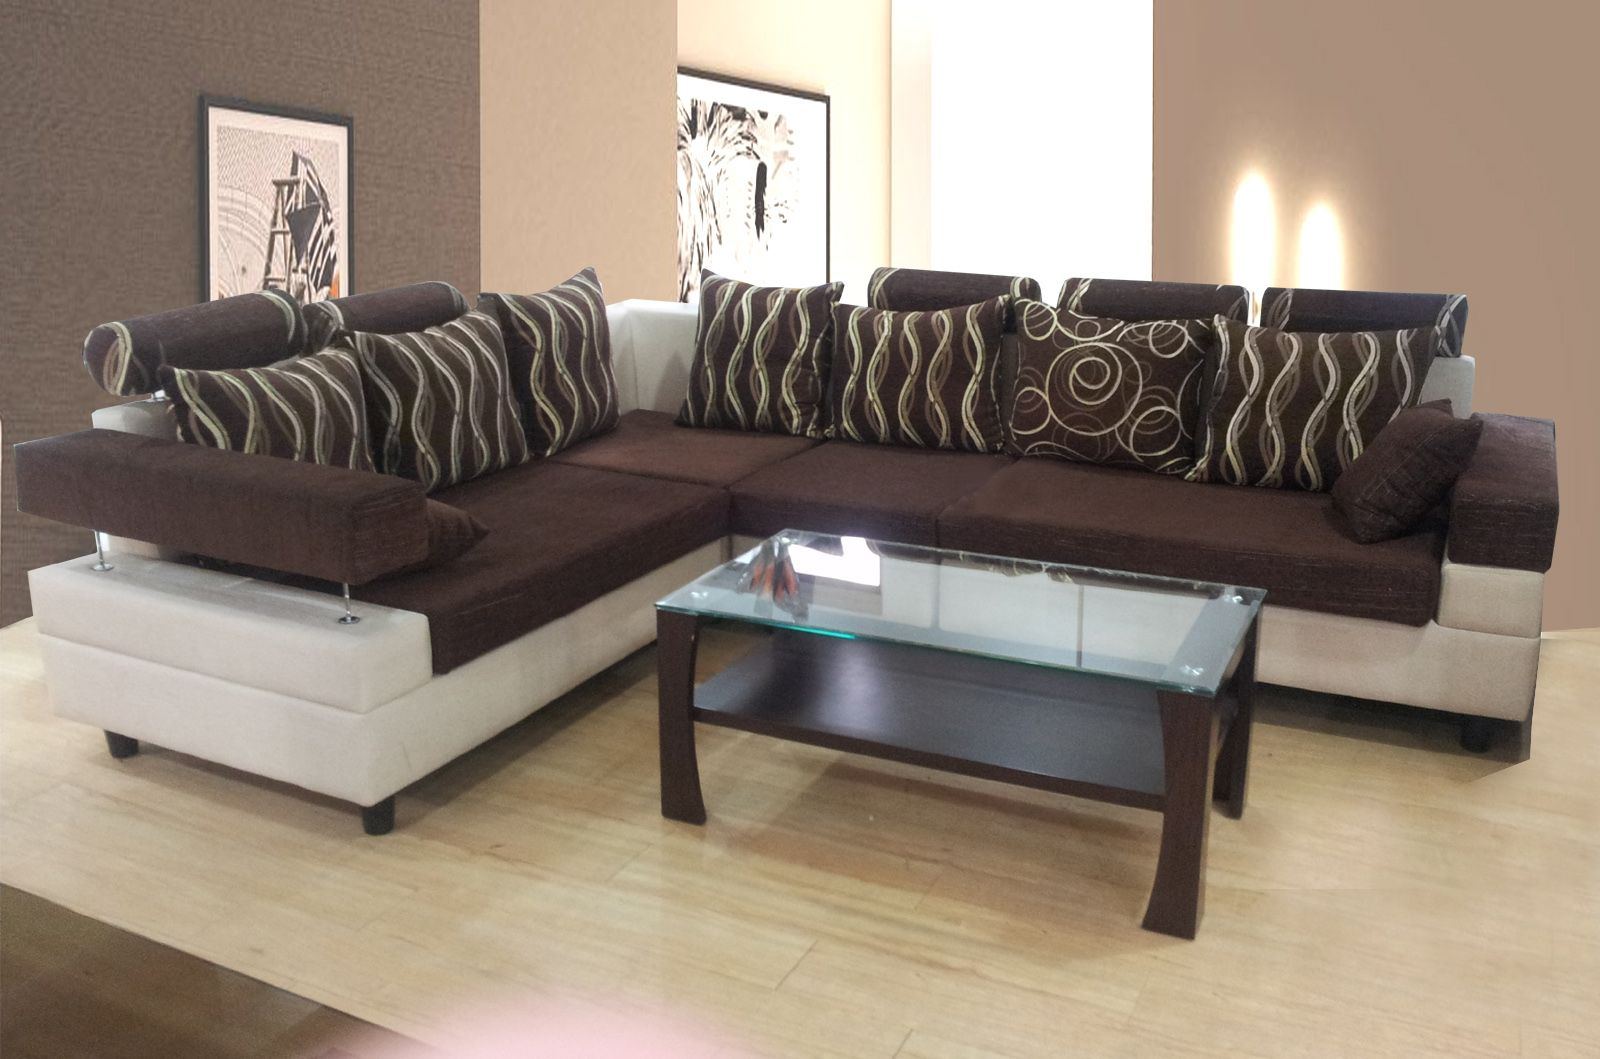 Affordable And Good Quality Nairobi Sofa Set Designs. More Here  Http://nairobisofasets · Modern Furniture ...